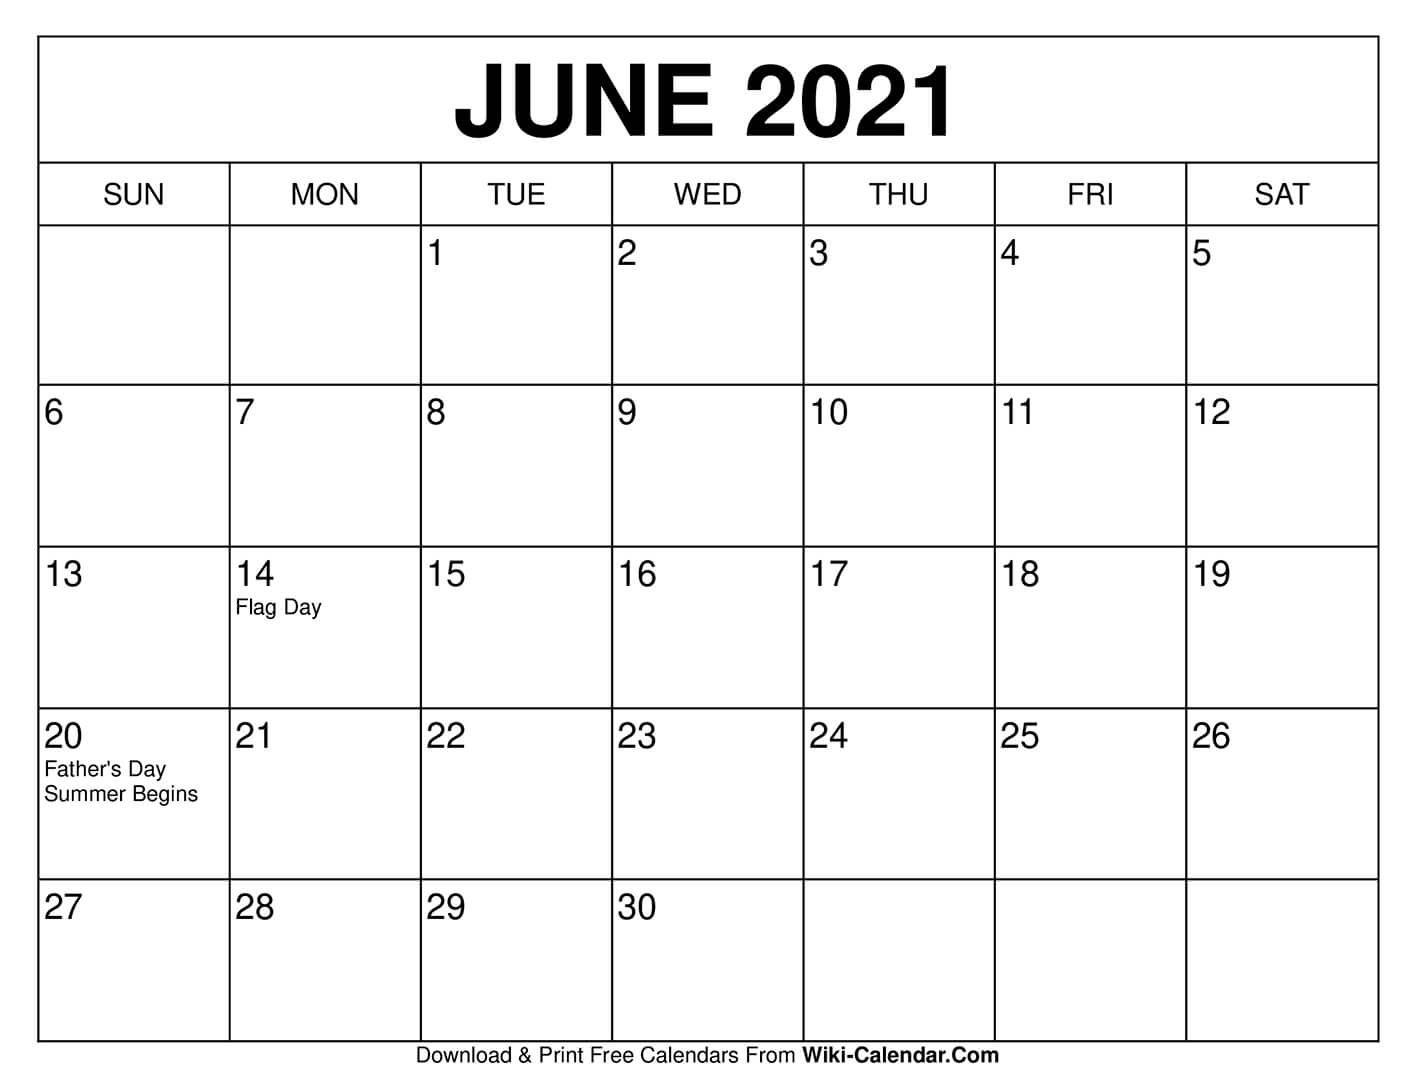 June 2021 Calendar In 2020 | Calendar Printables, 2020